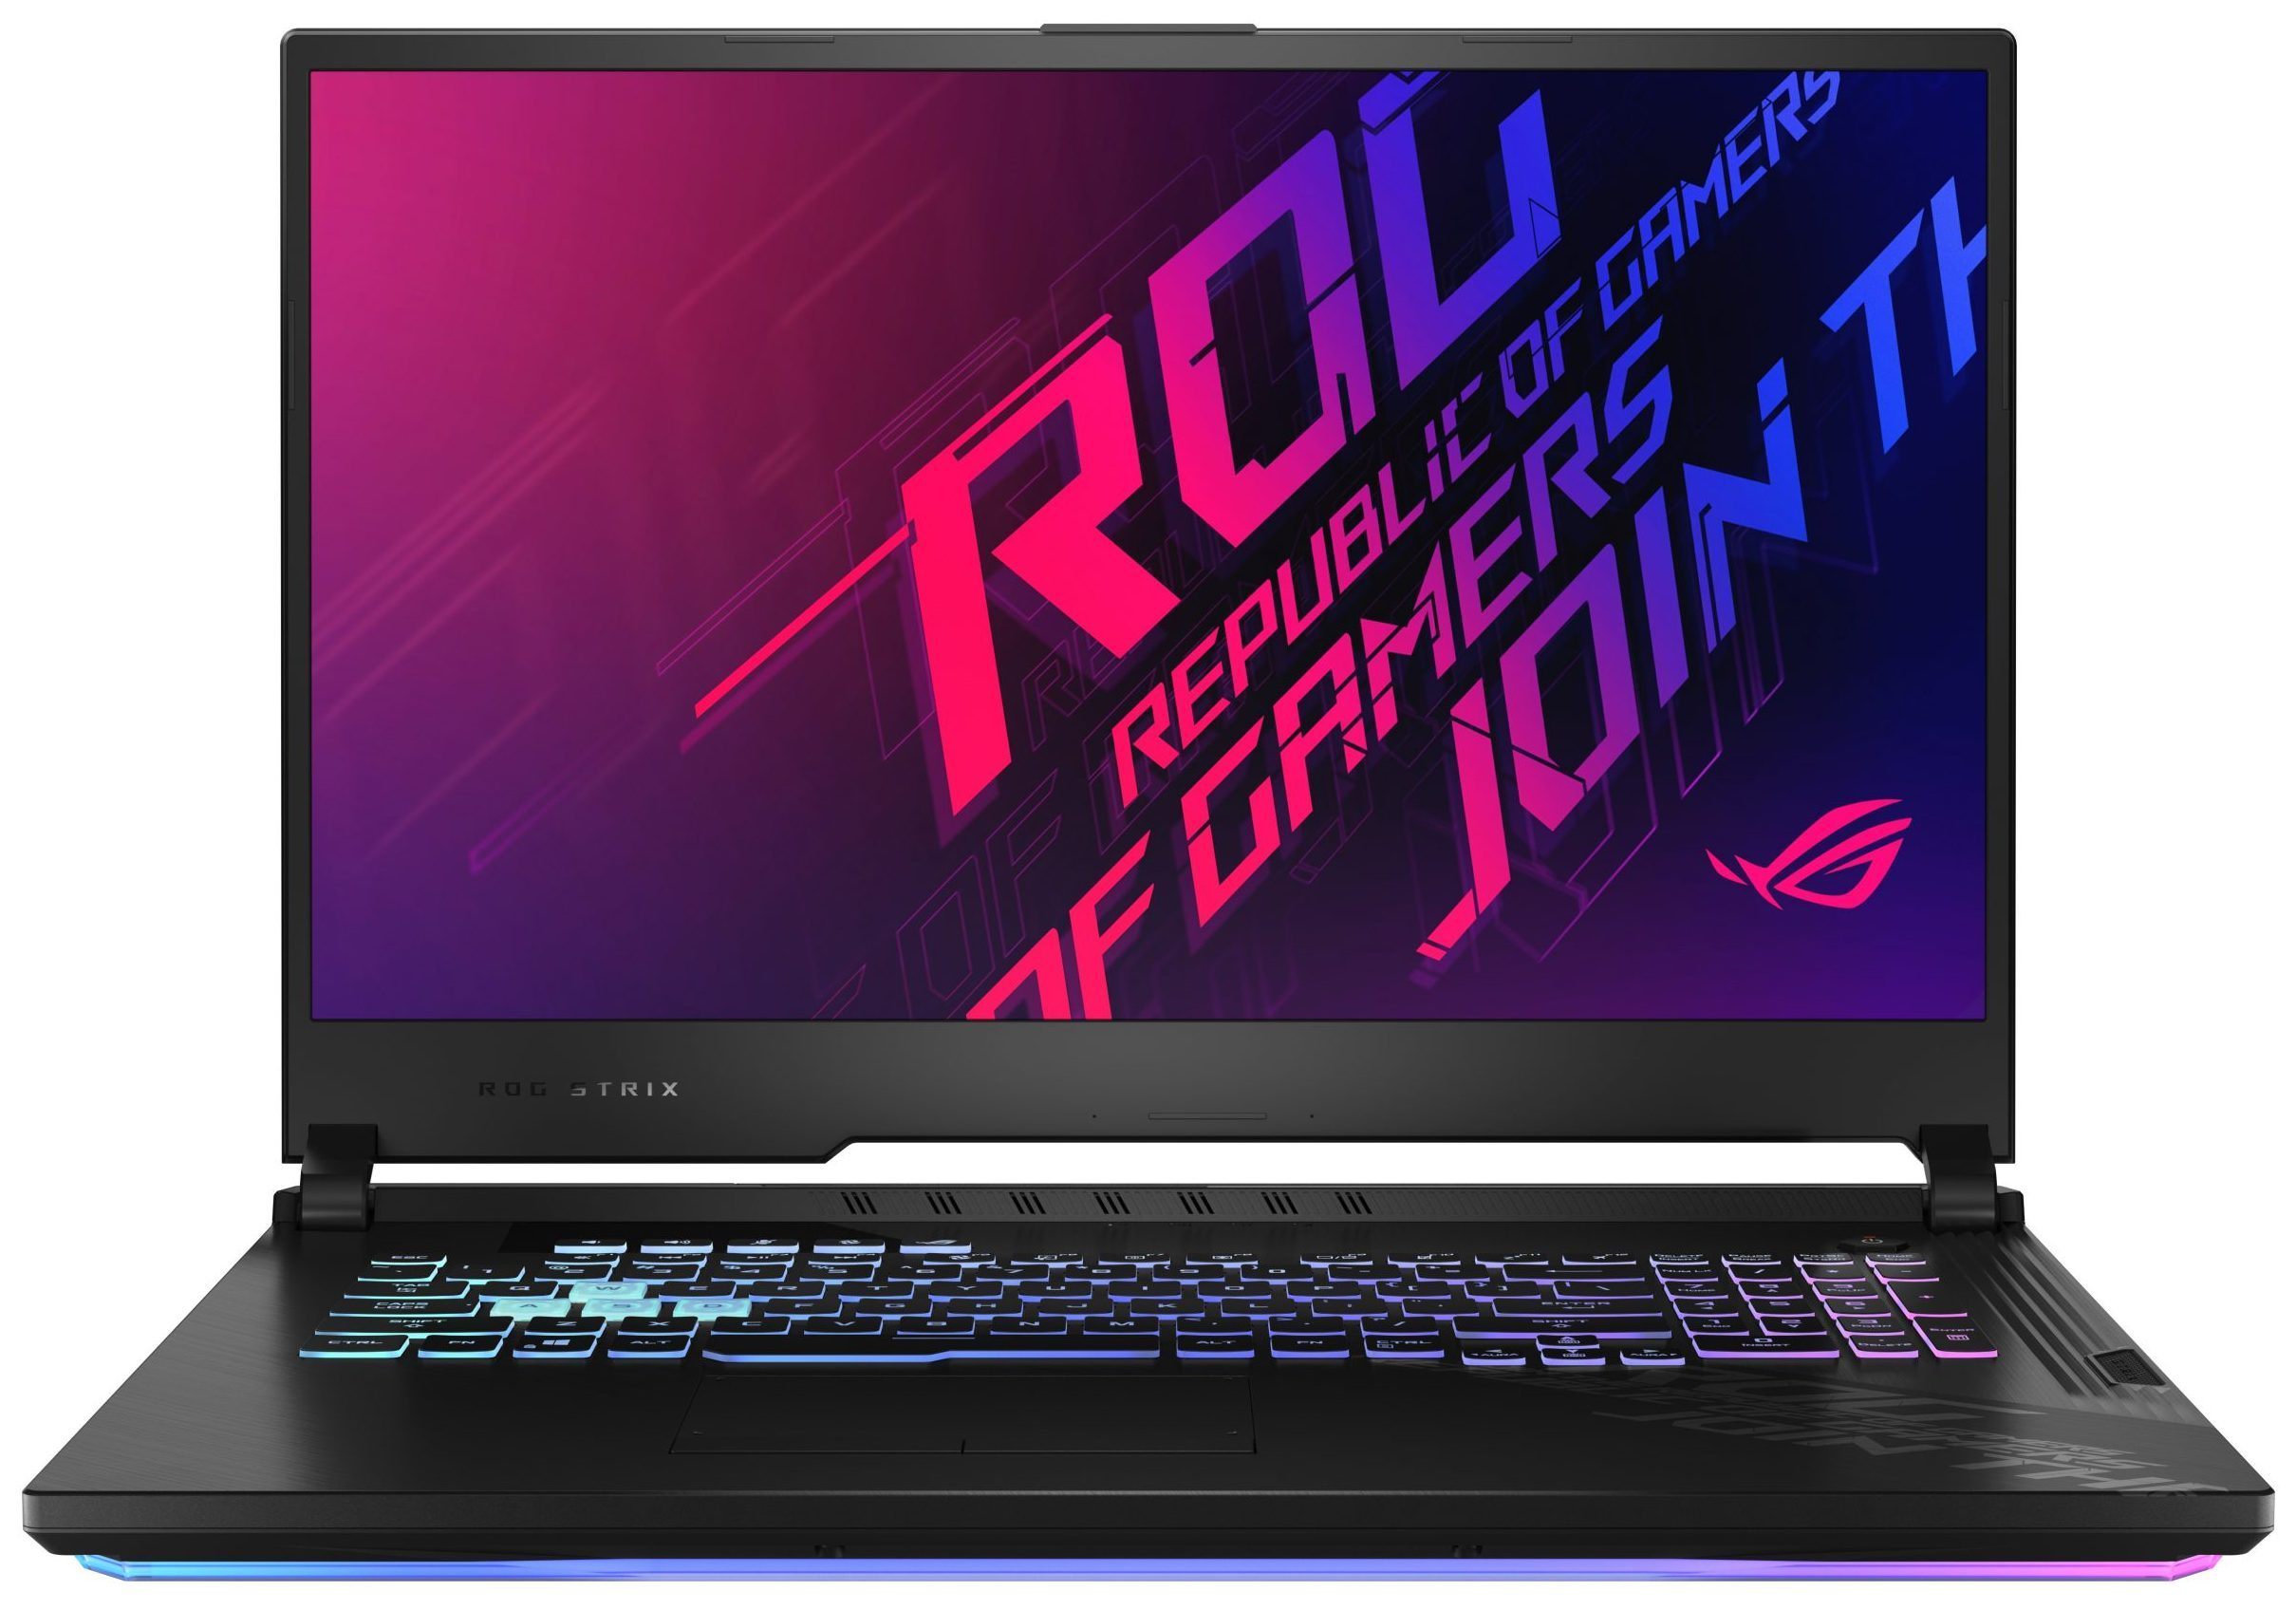 ASUS ROG STRIX G15 – G512LI vs G512LU vs G512LV vs G512LW vs G512LWS – what are the differences?